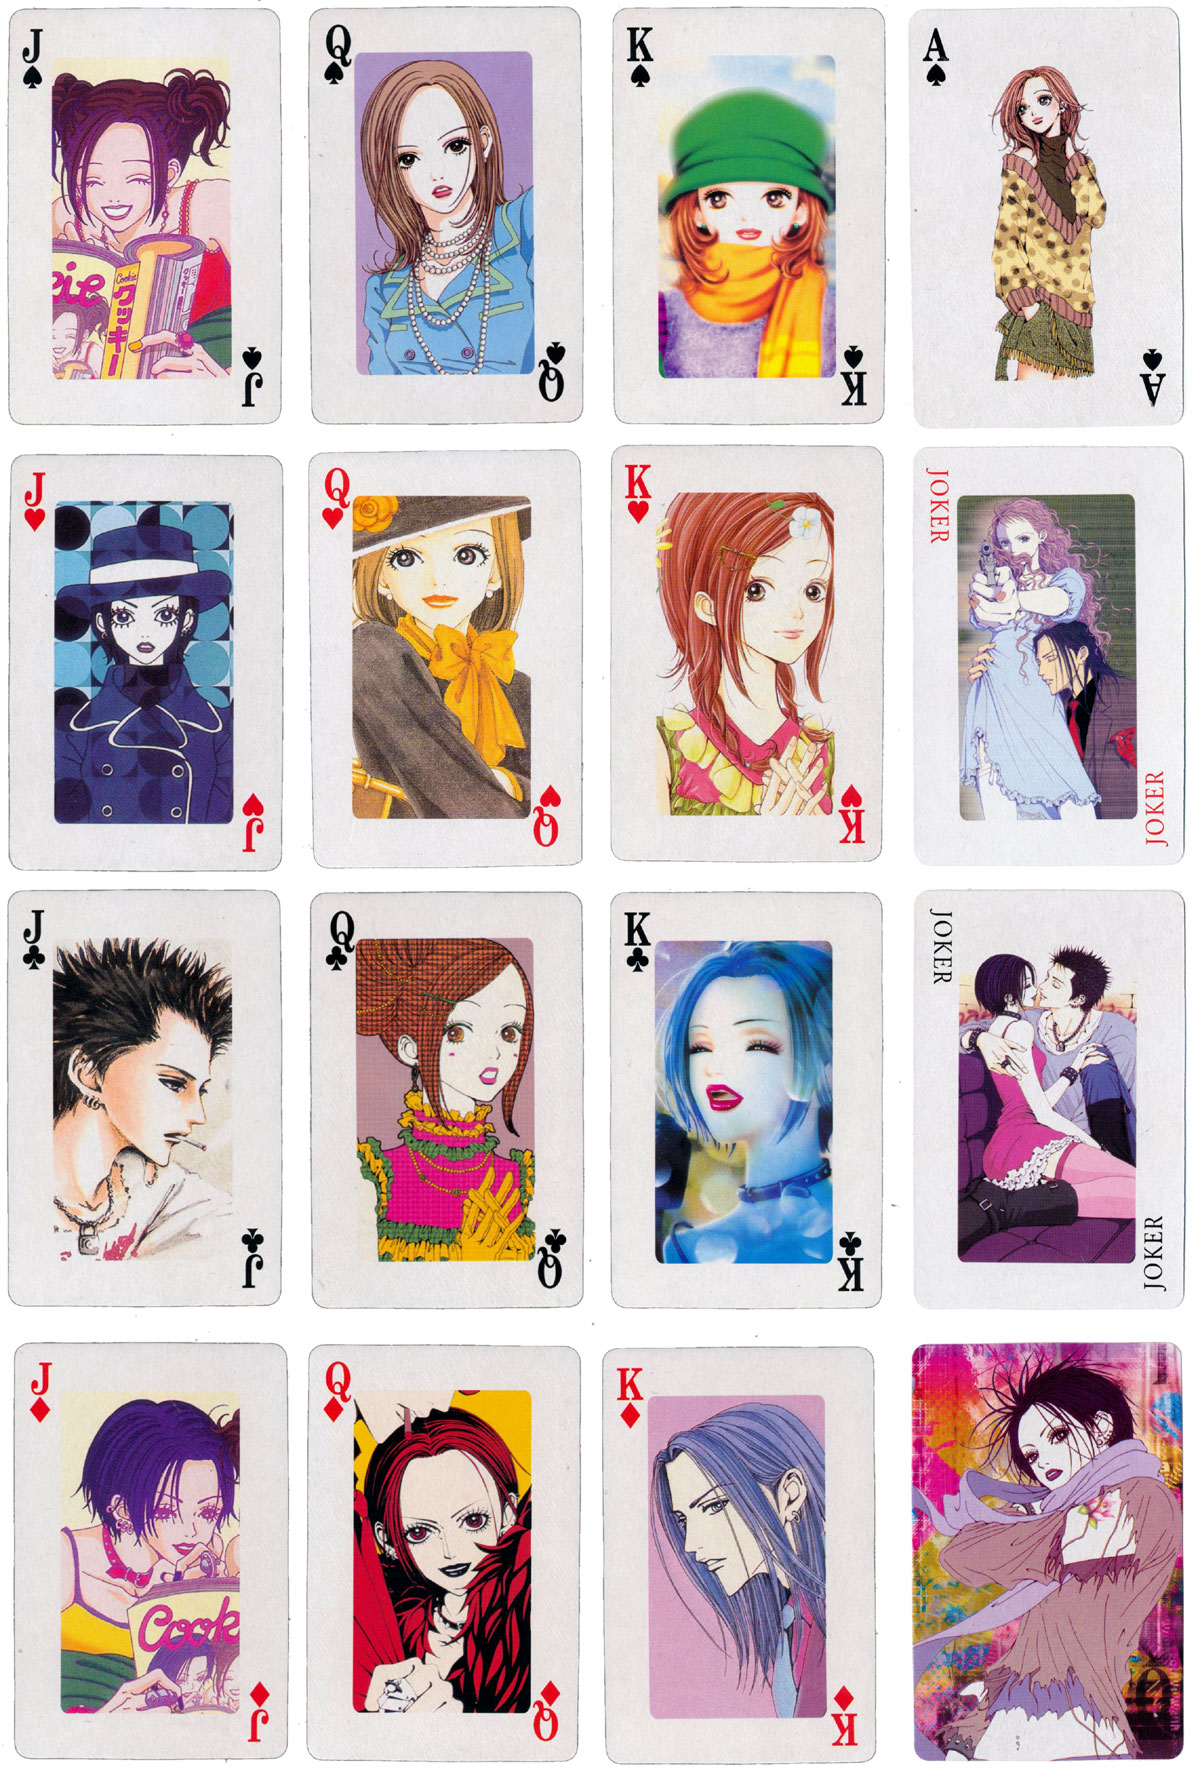 'Nana Poker' created by Hongyi in 2003